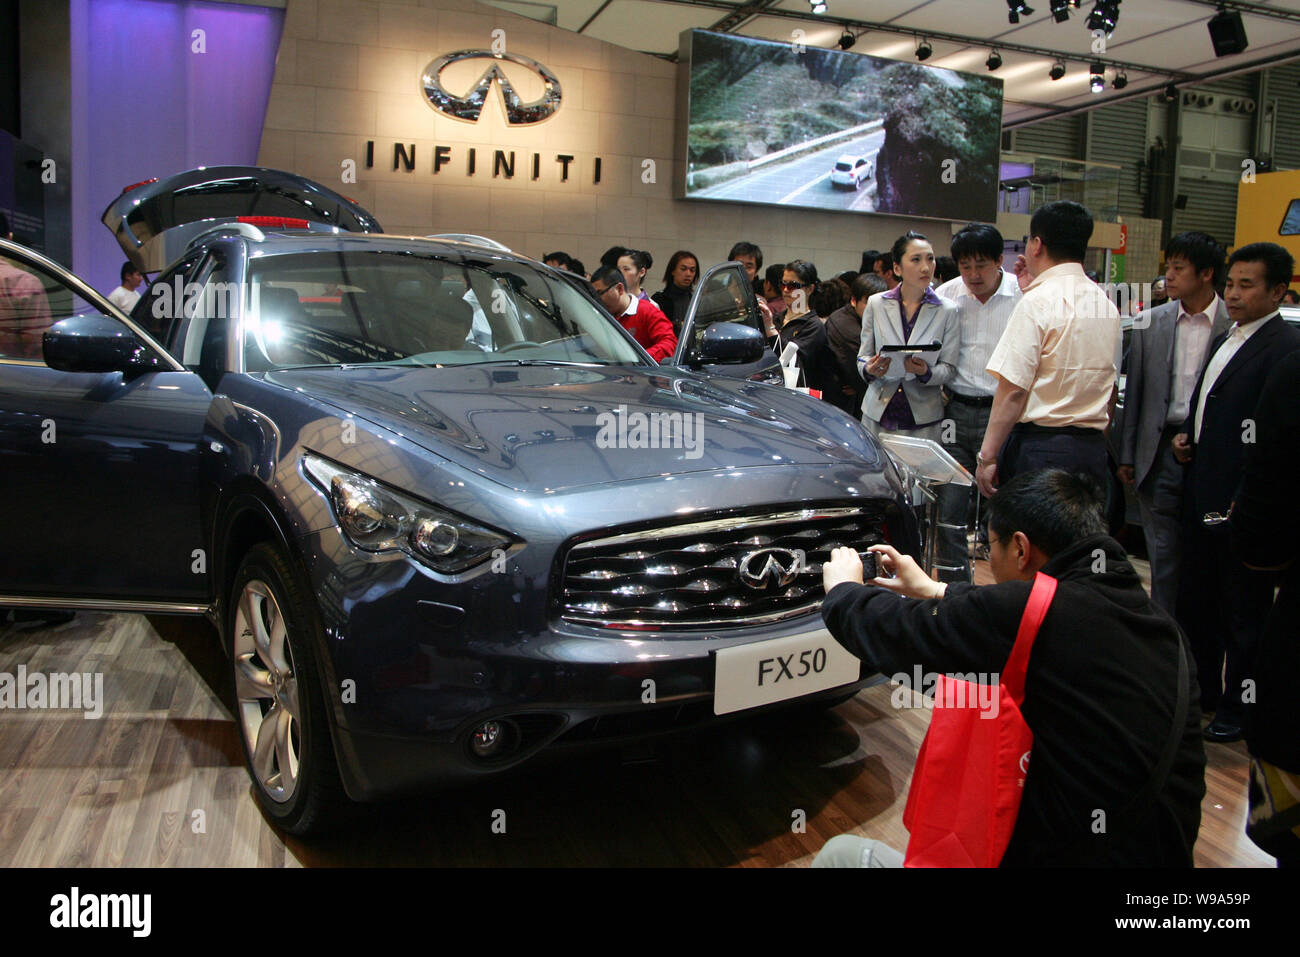 Nissan Luxury Brand >> File Visitors Look At An Infiniti Fx50 Of Nissan During An